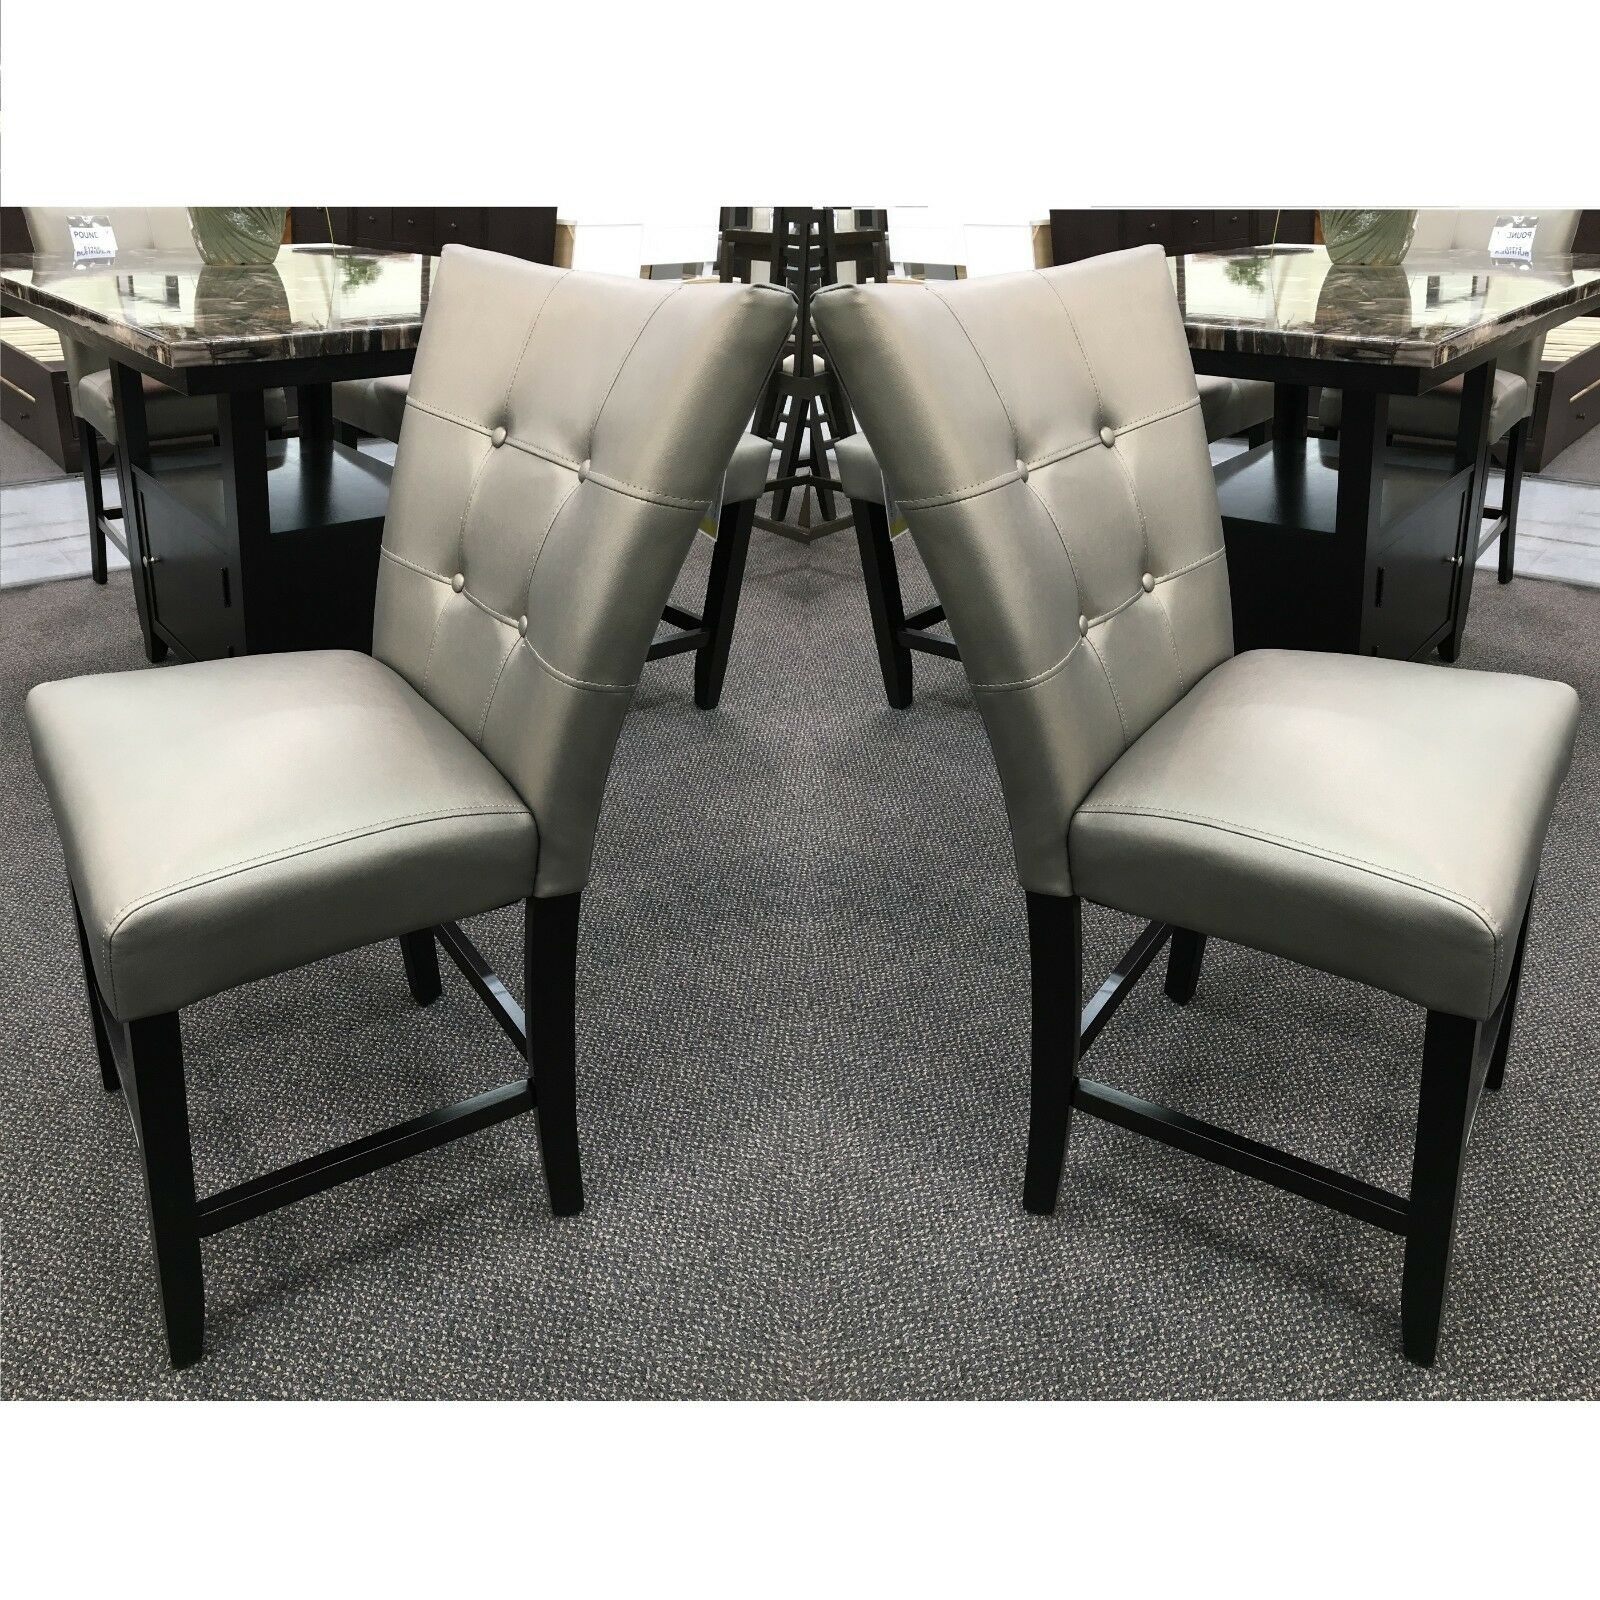 """Set of 2 - 24"""" Seat Height Faux Leather Dining Chair"""